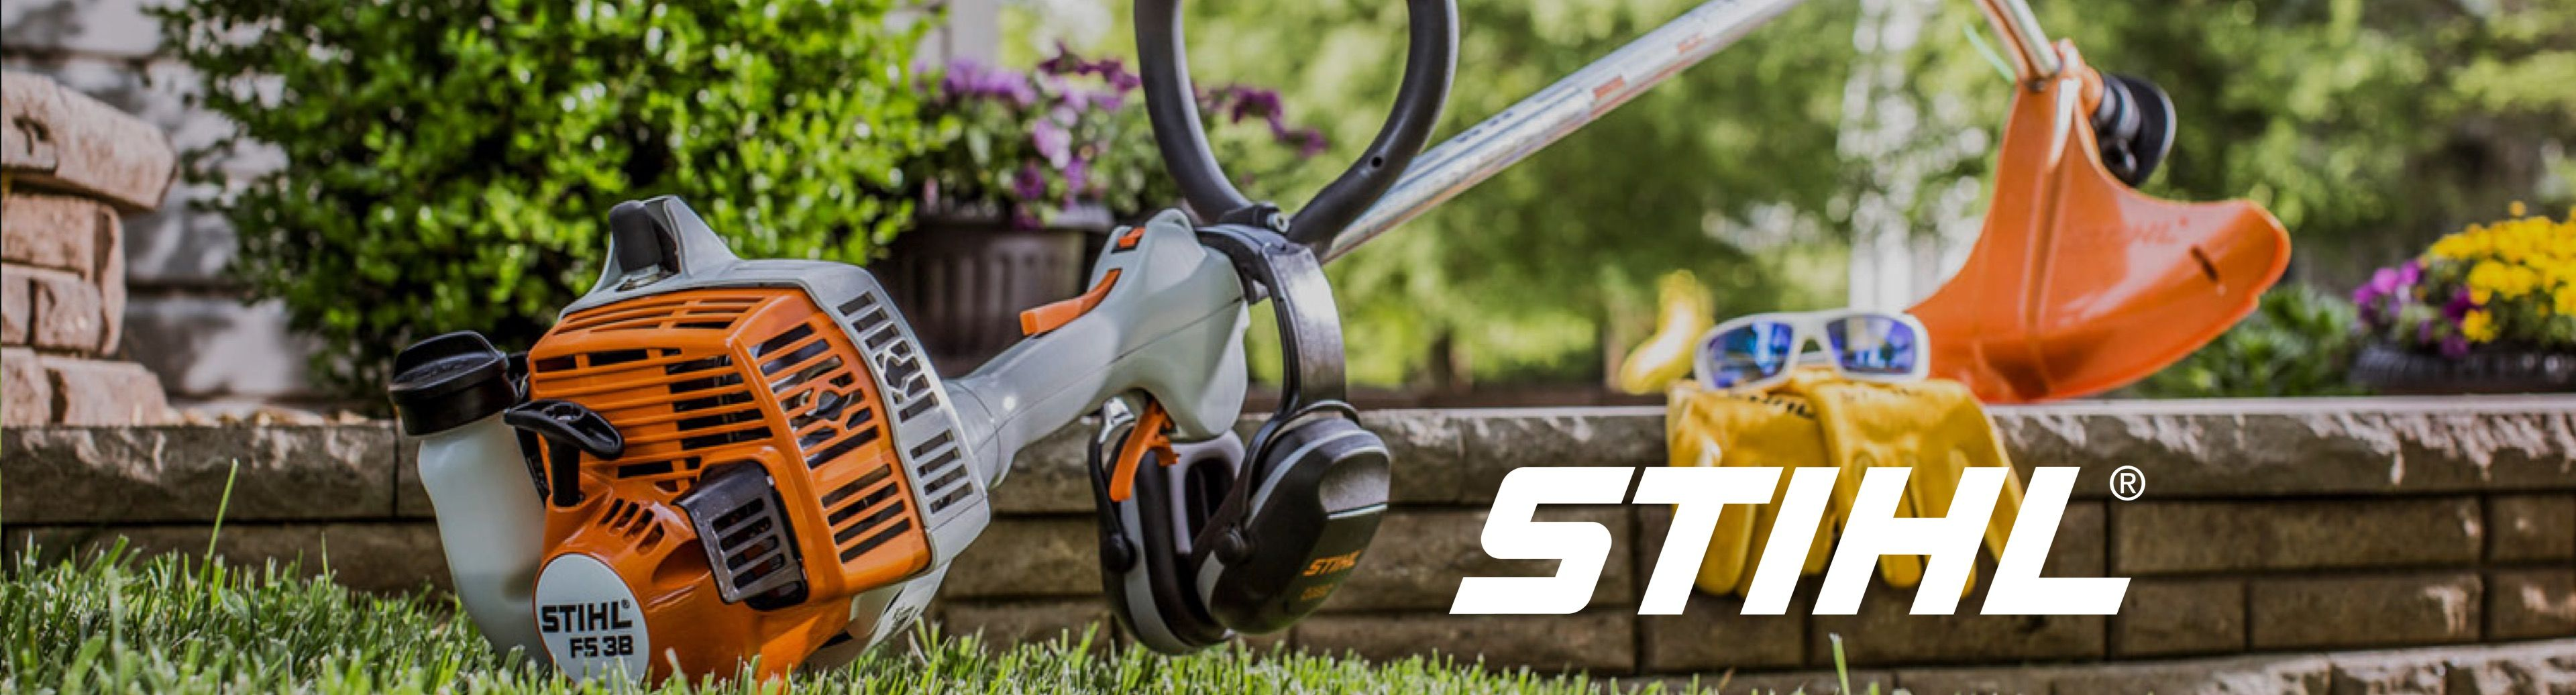 Shop Stihl power equipment at Horseheads